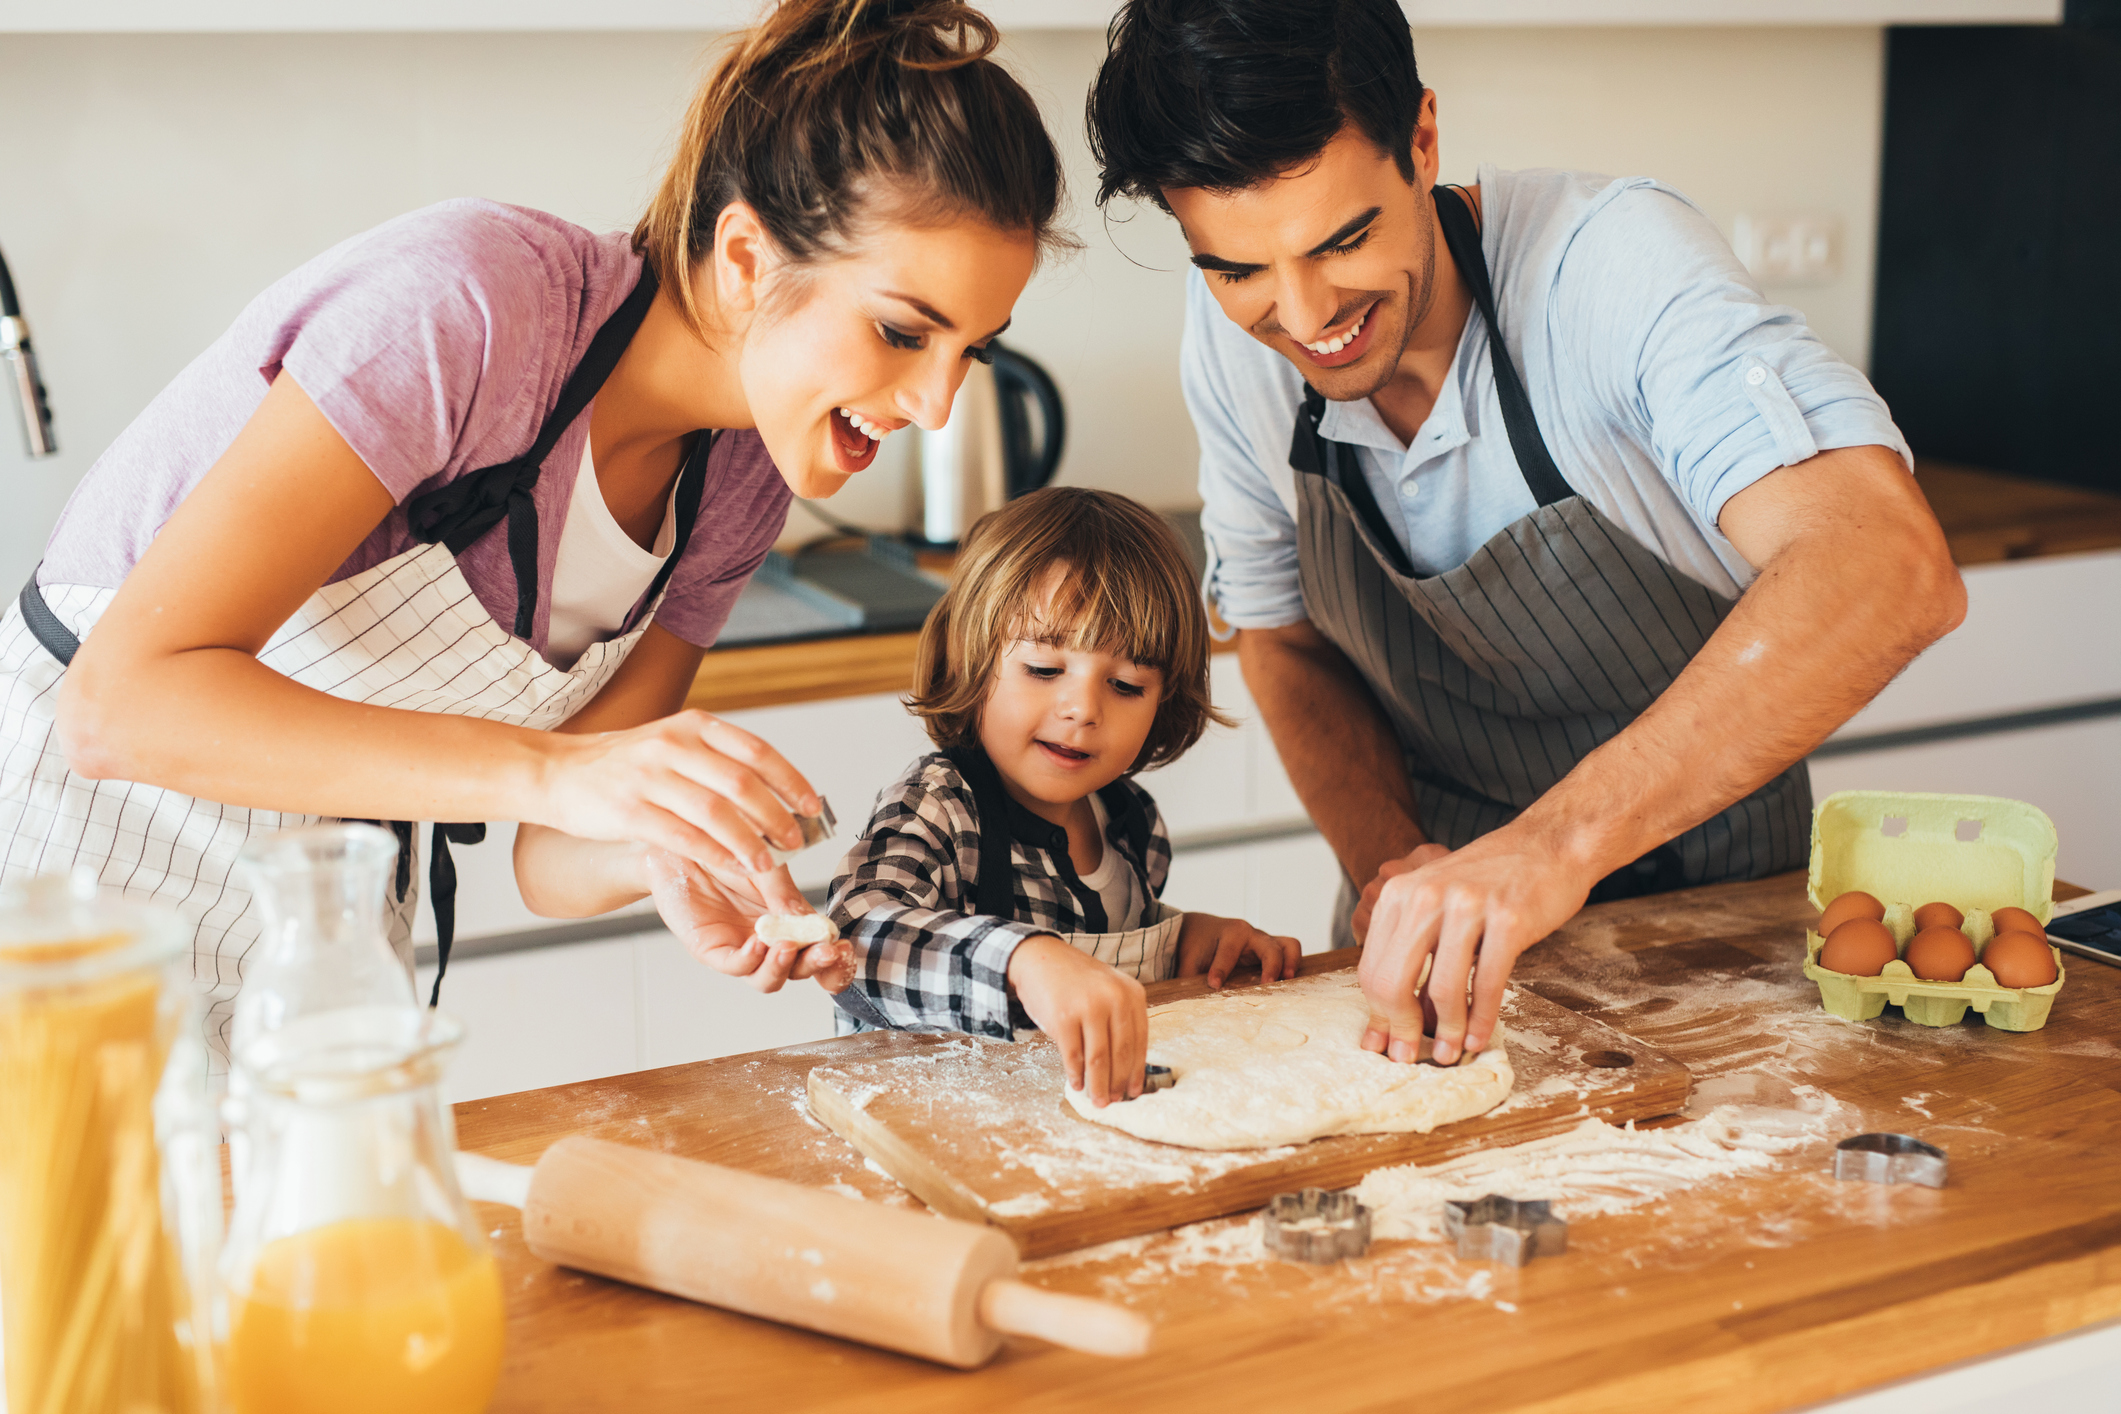 8 Reasons Why People Love Baking - News Digest | Healthy Options